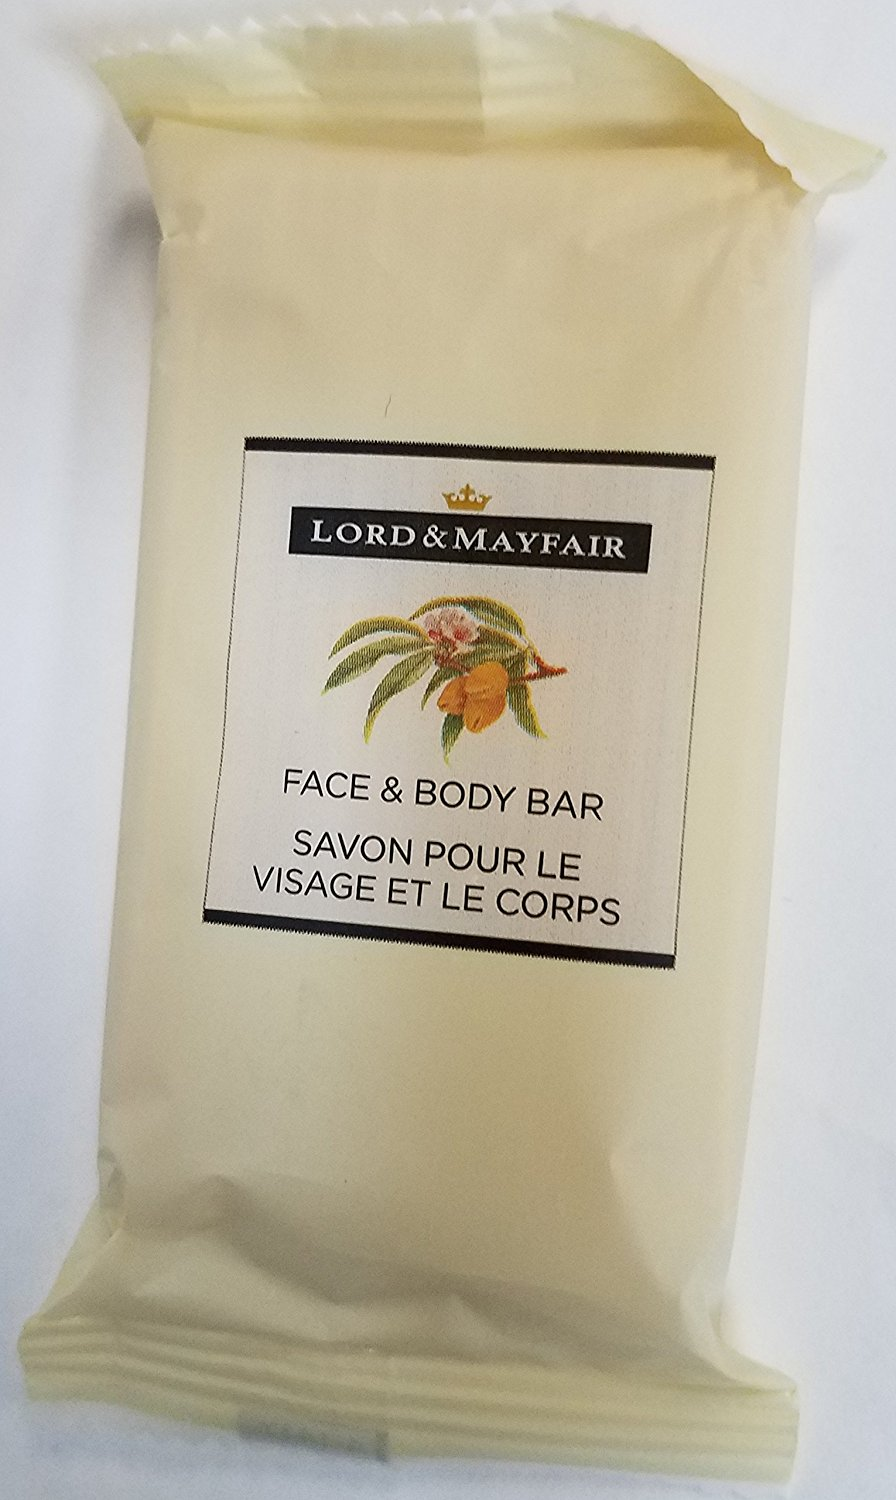 LORD & MAYFAIR FACE &BODY BAR 1.6 OZ